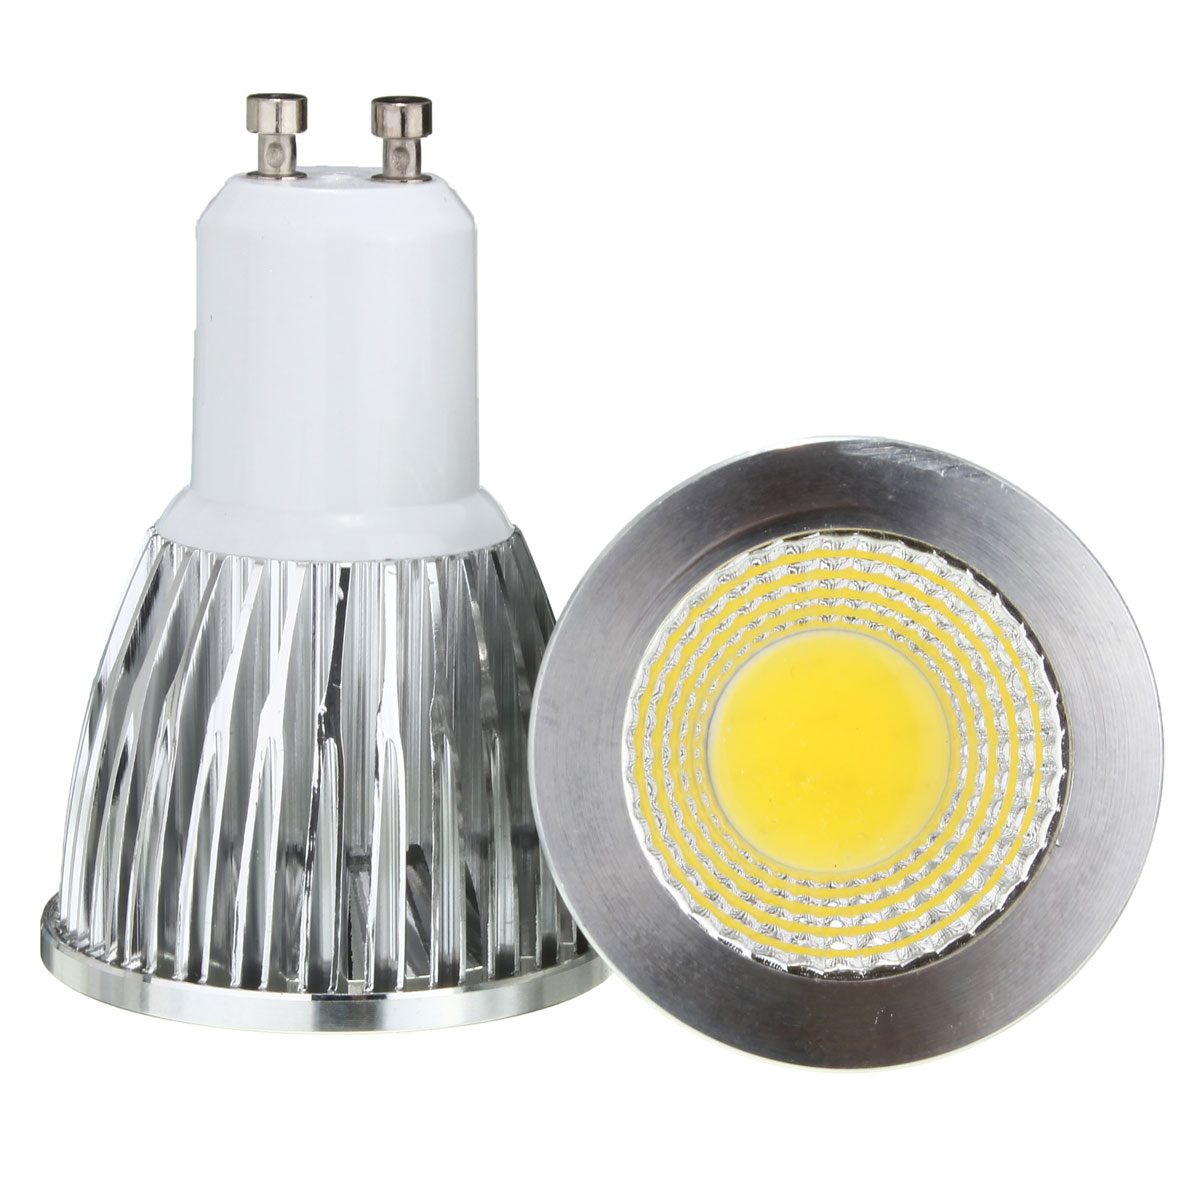 AC 85-265V 5W GU10 LED COB Spot light lamp Energy Saving light bulb Aluminum Spotlight Led Lighting